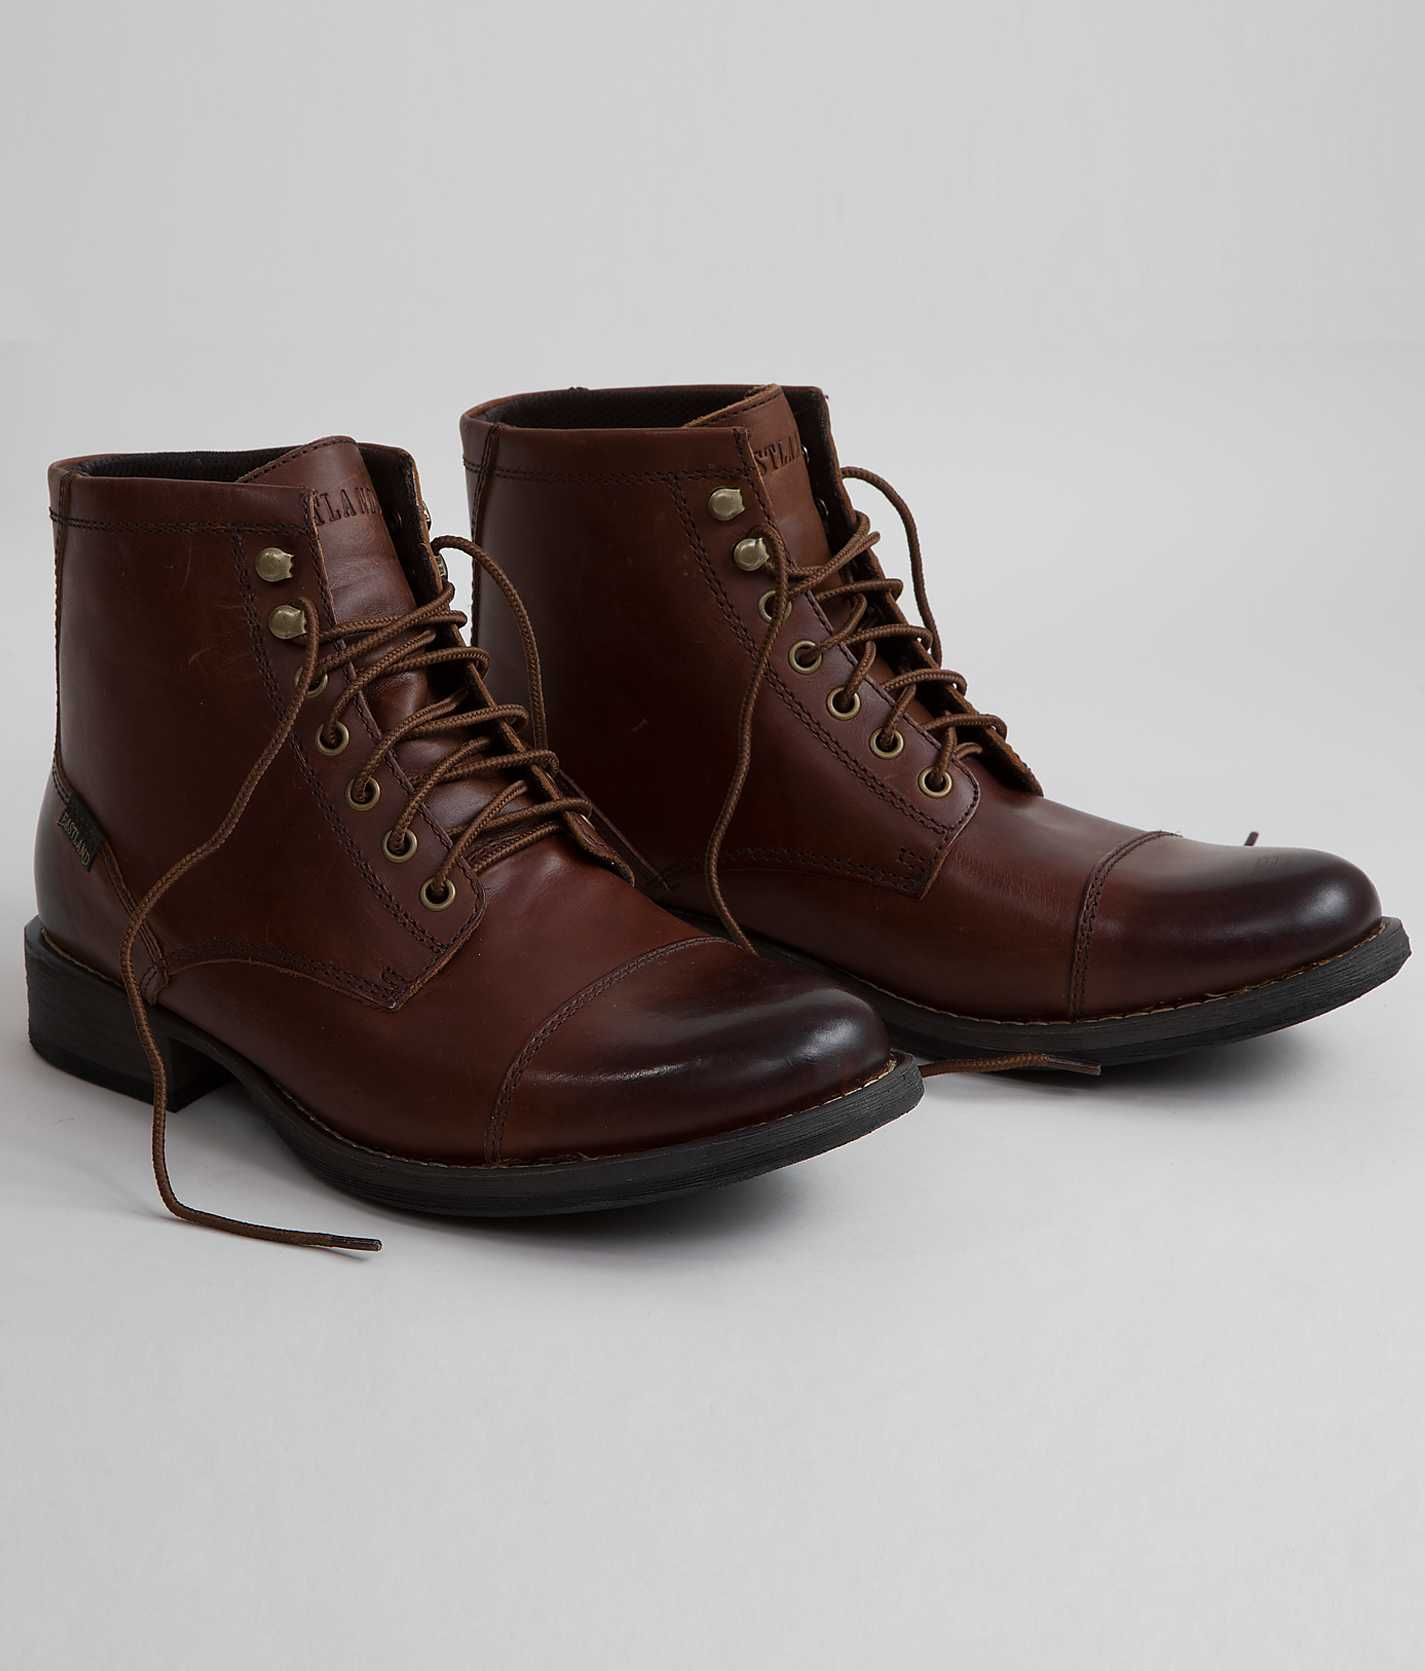 Eastland High Fidelity Boot - Men's Shoes | Buckle